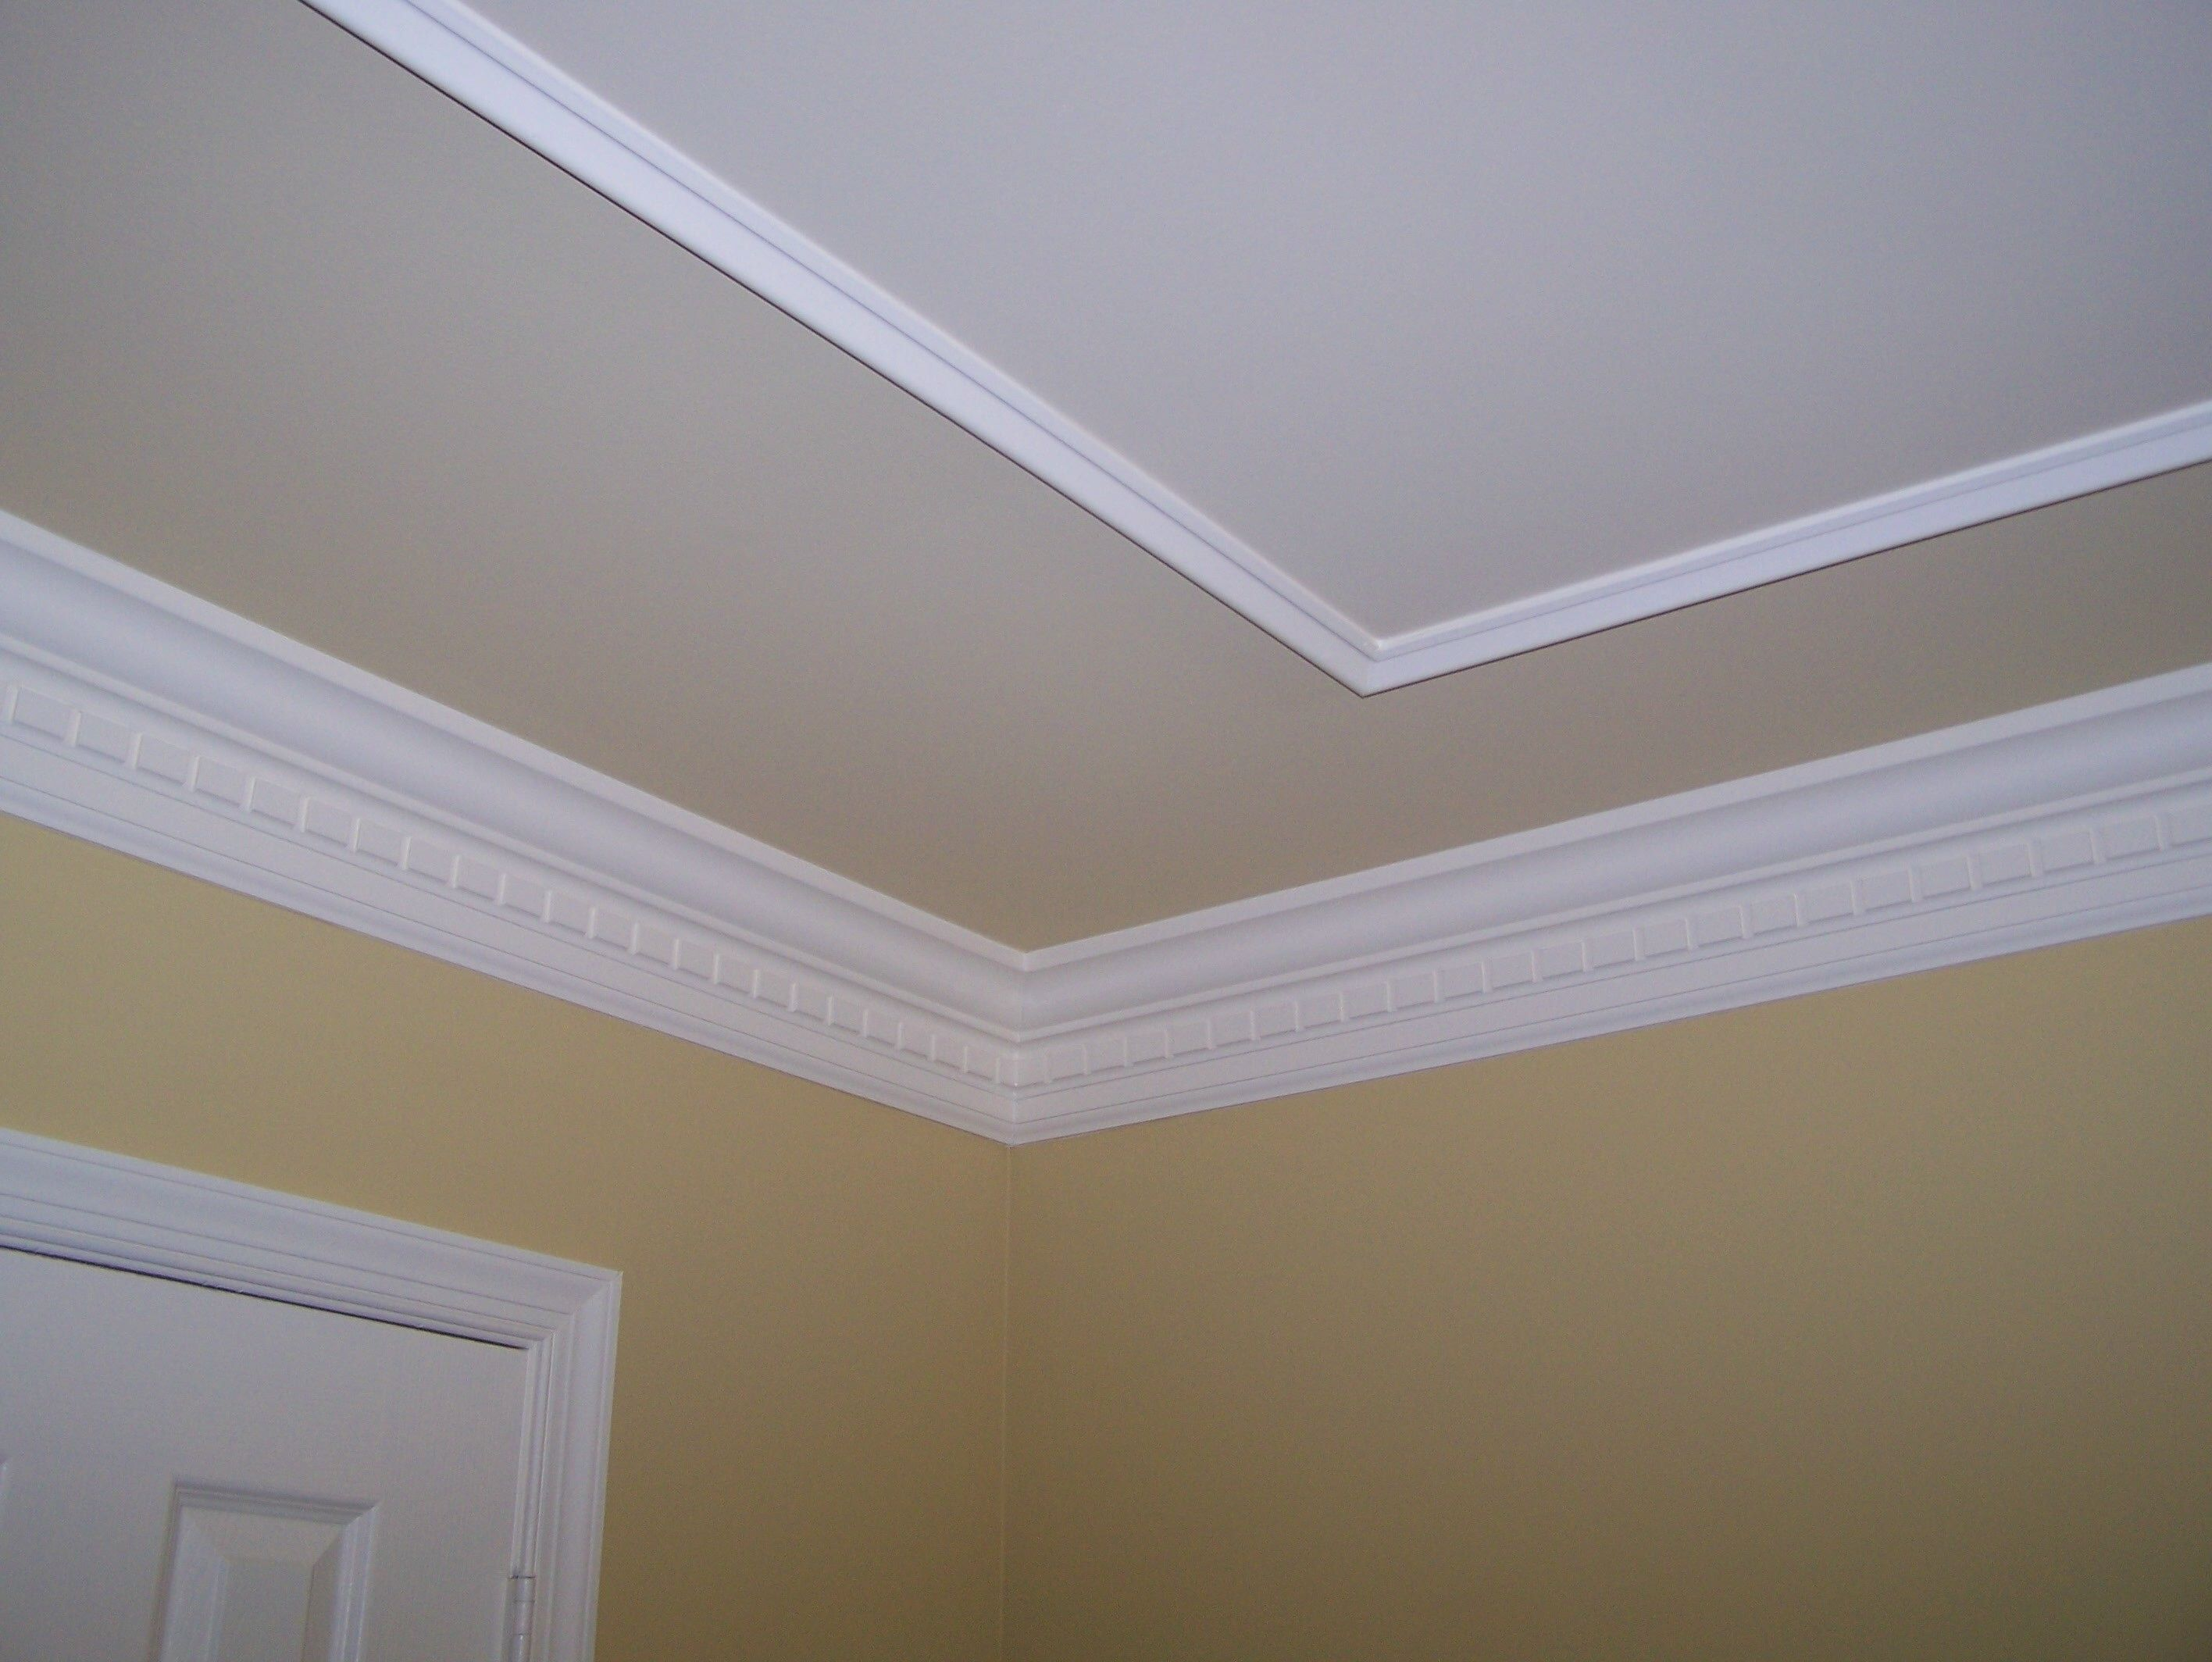 painted ceiling | Gallery - Carpentry & Drywall | 4 chair sitting ...